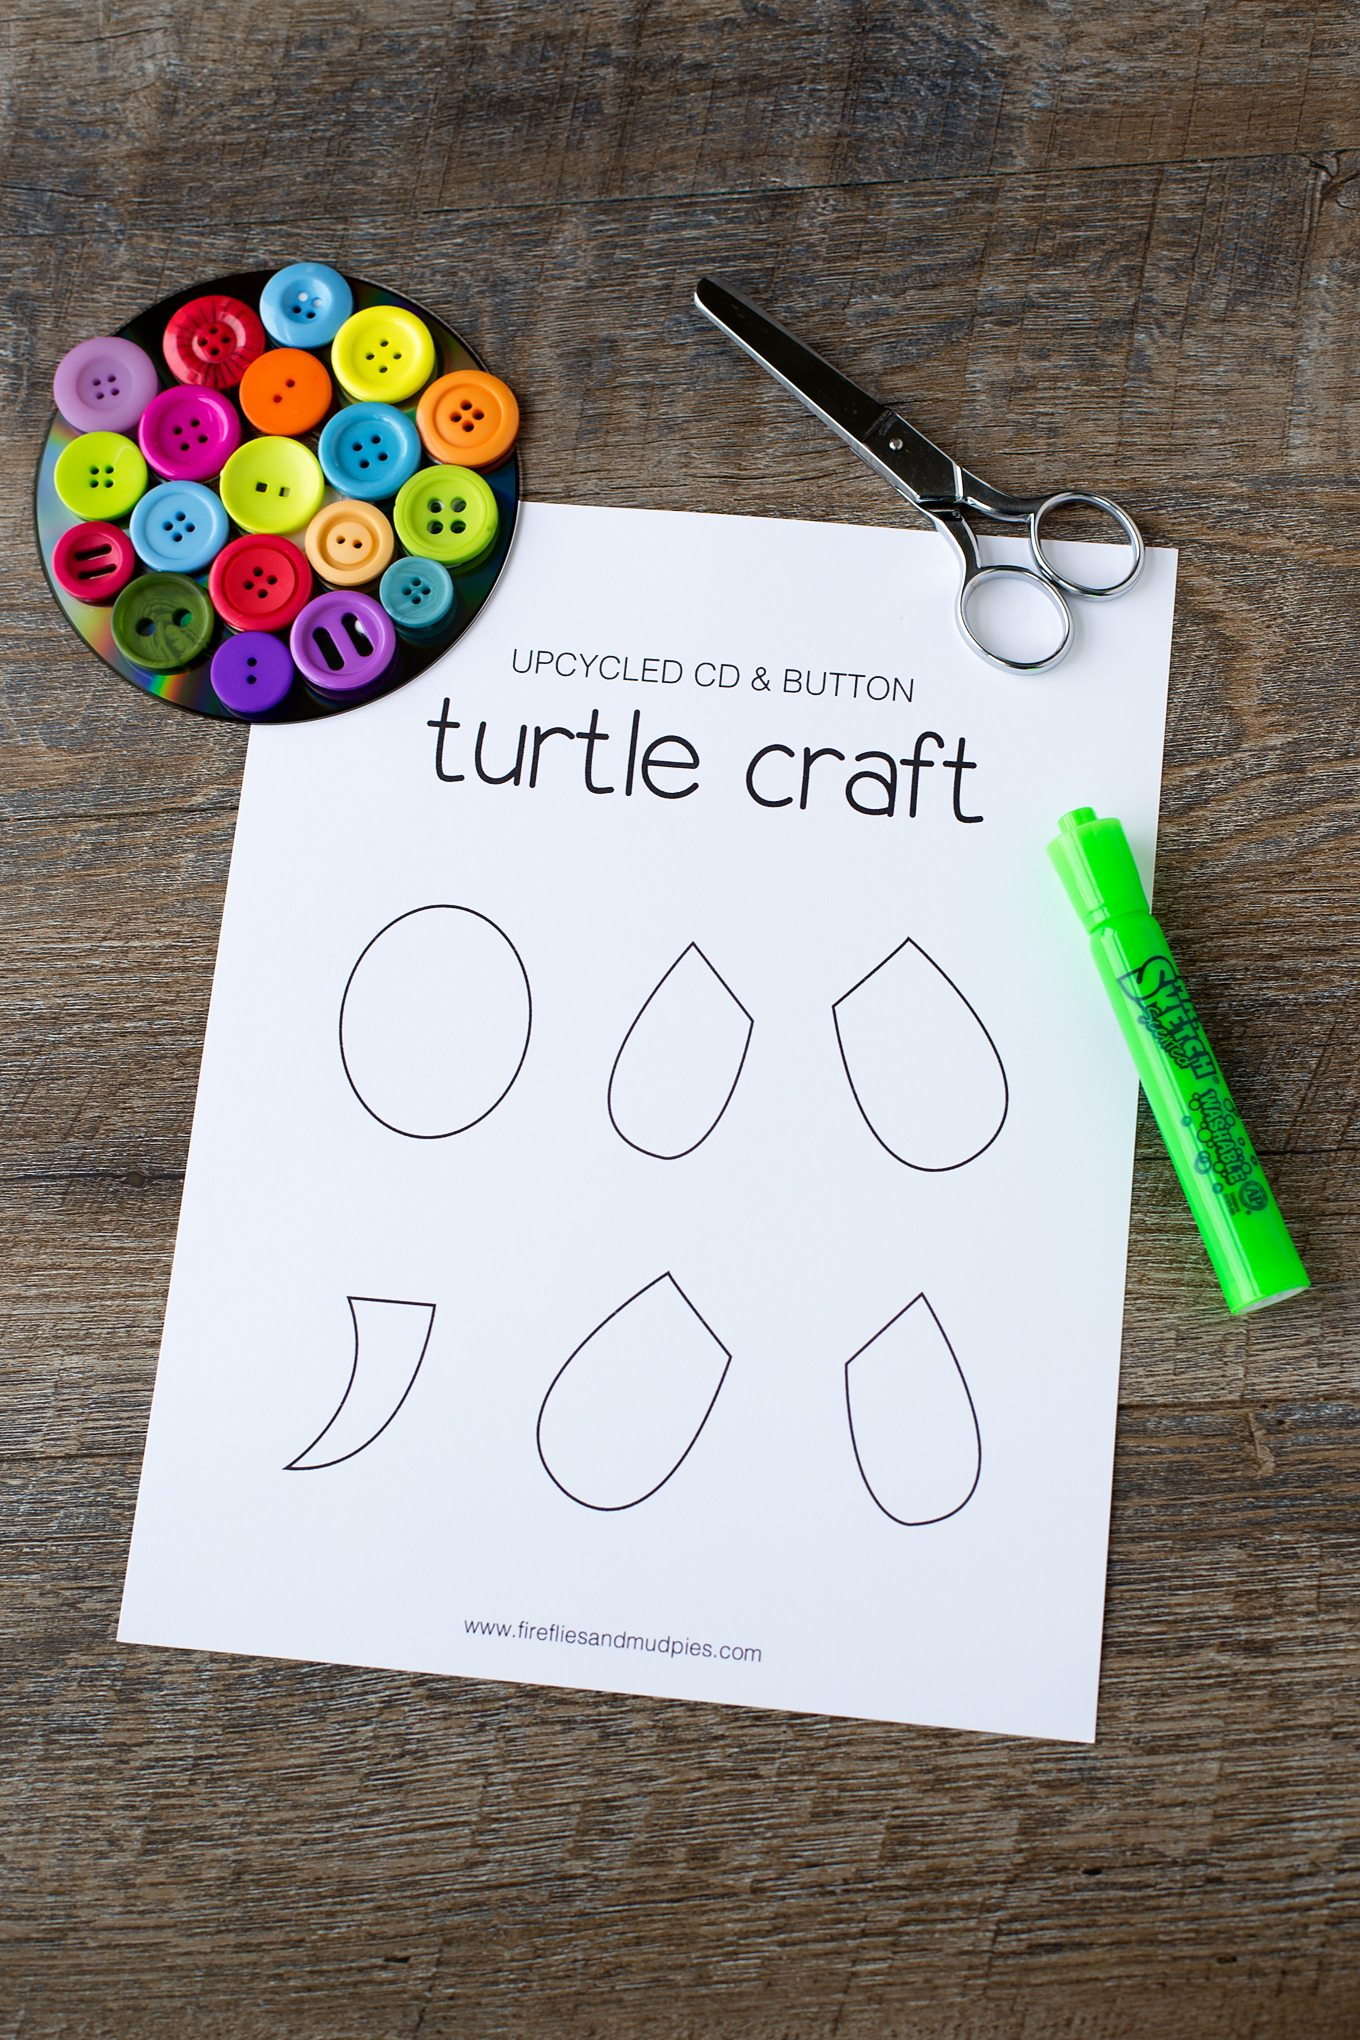 Colorful Cd Button Turtle Craft For Kids Fireflies And Mud Pies